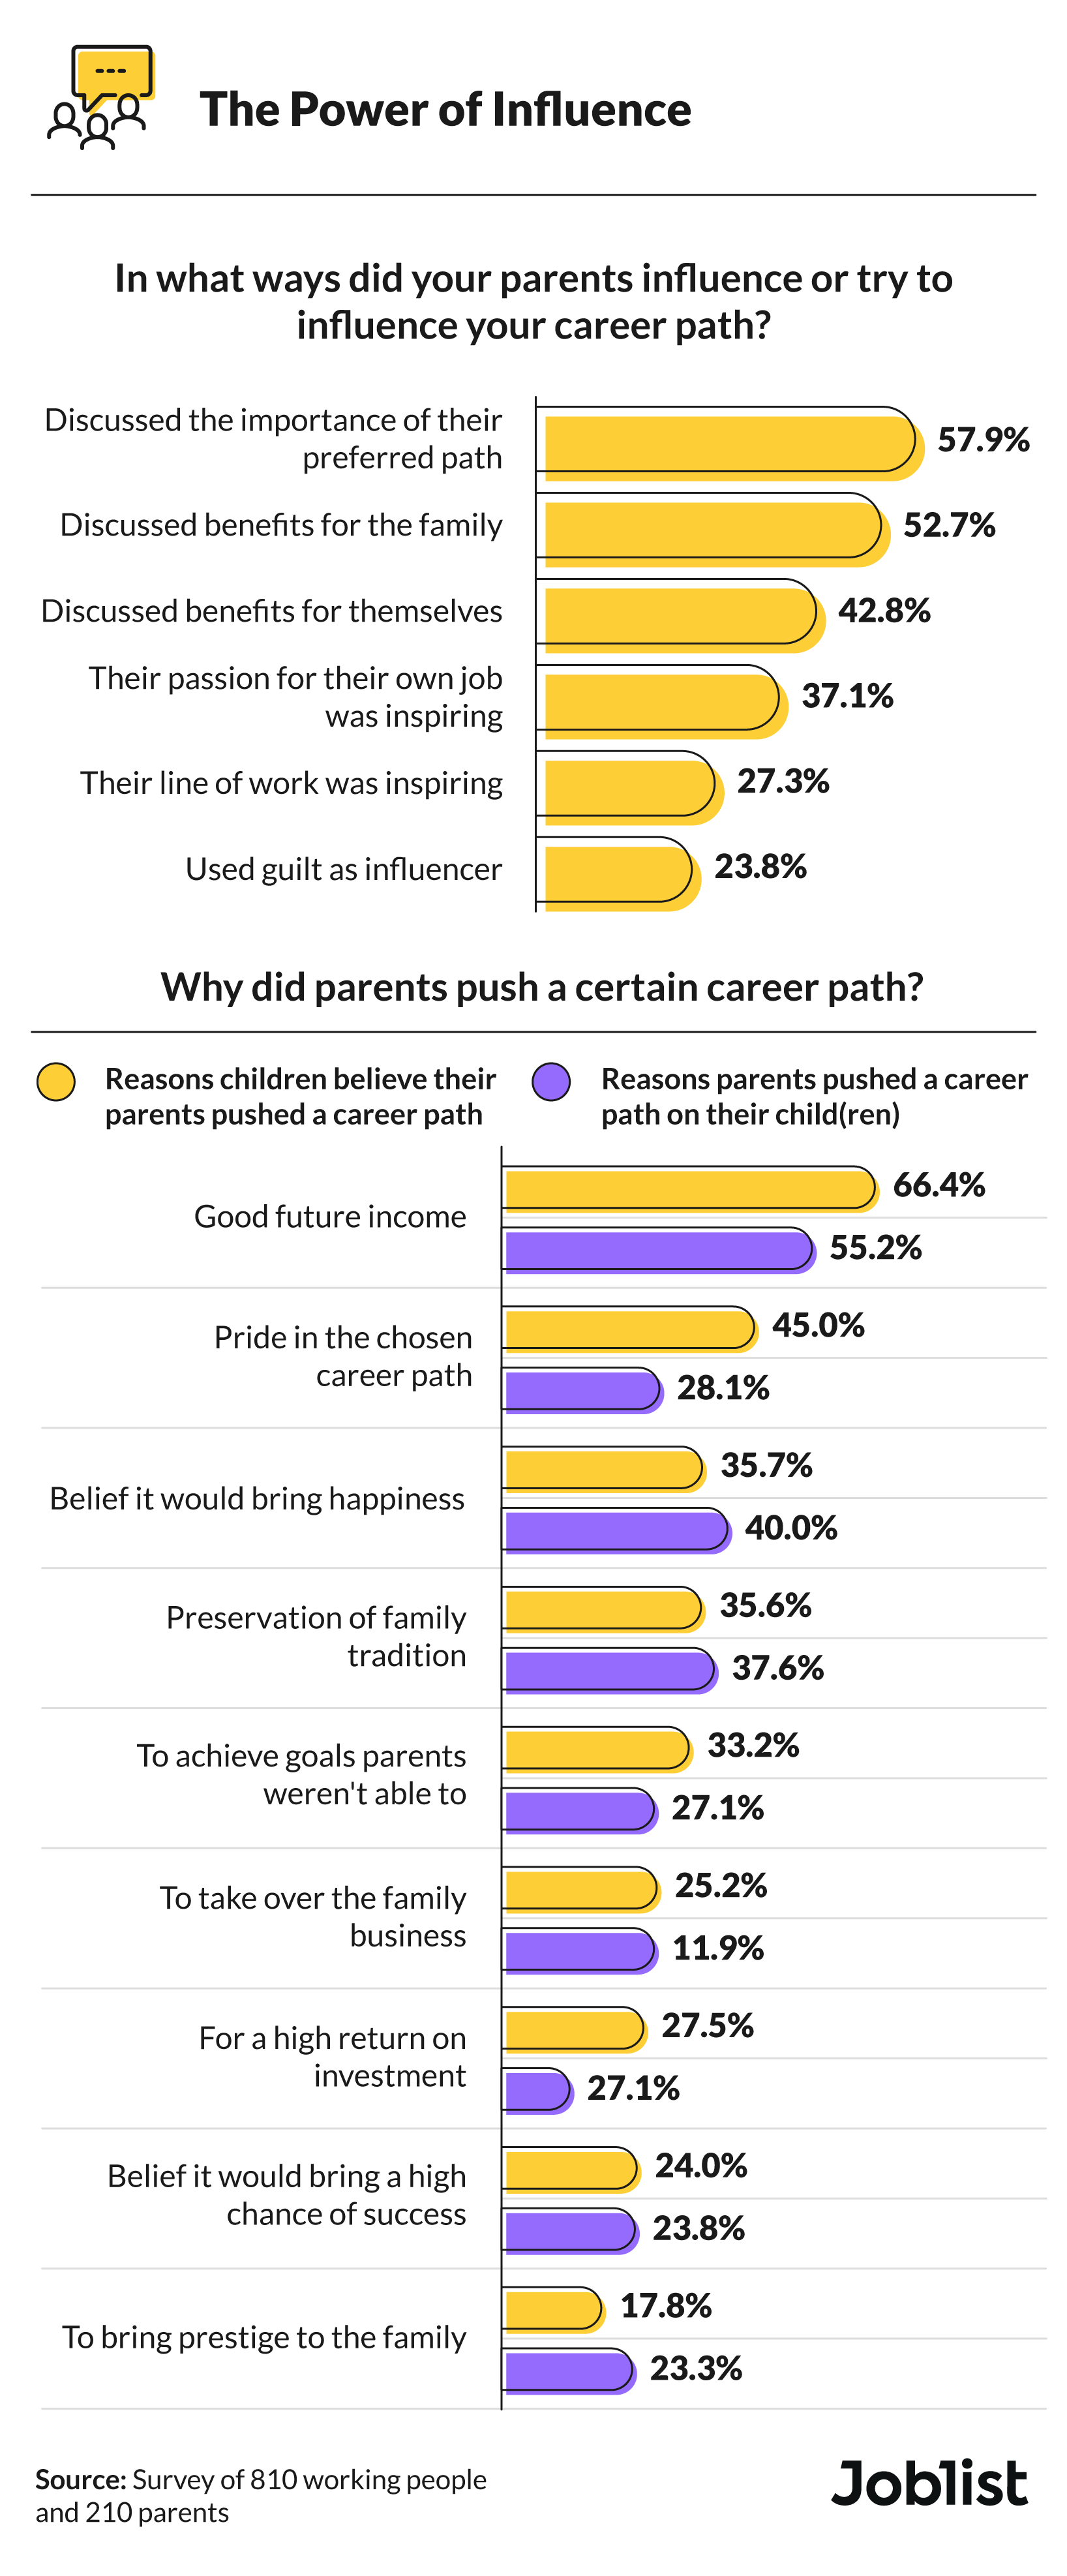 Ways and reasons parents influence career paths